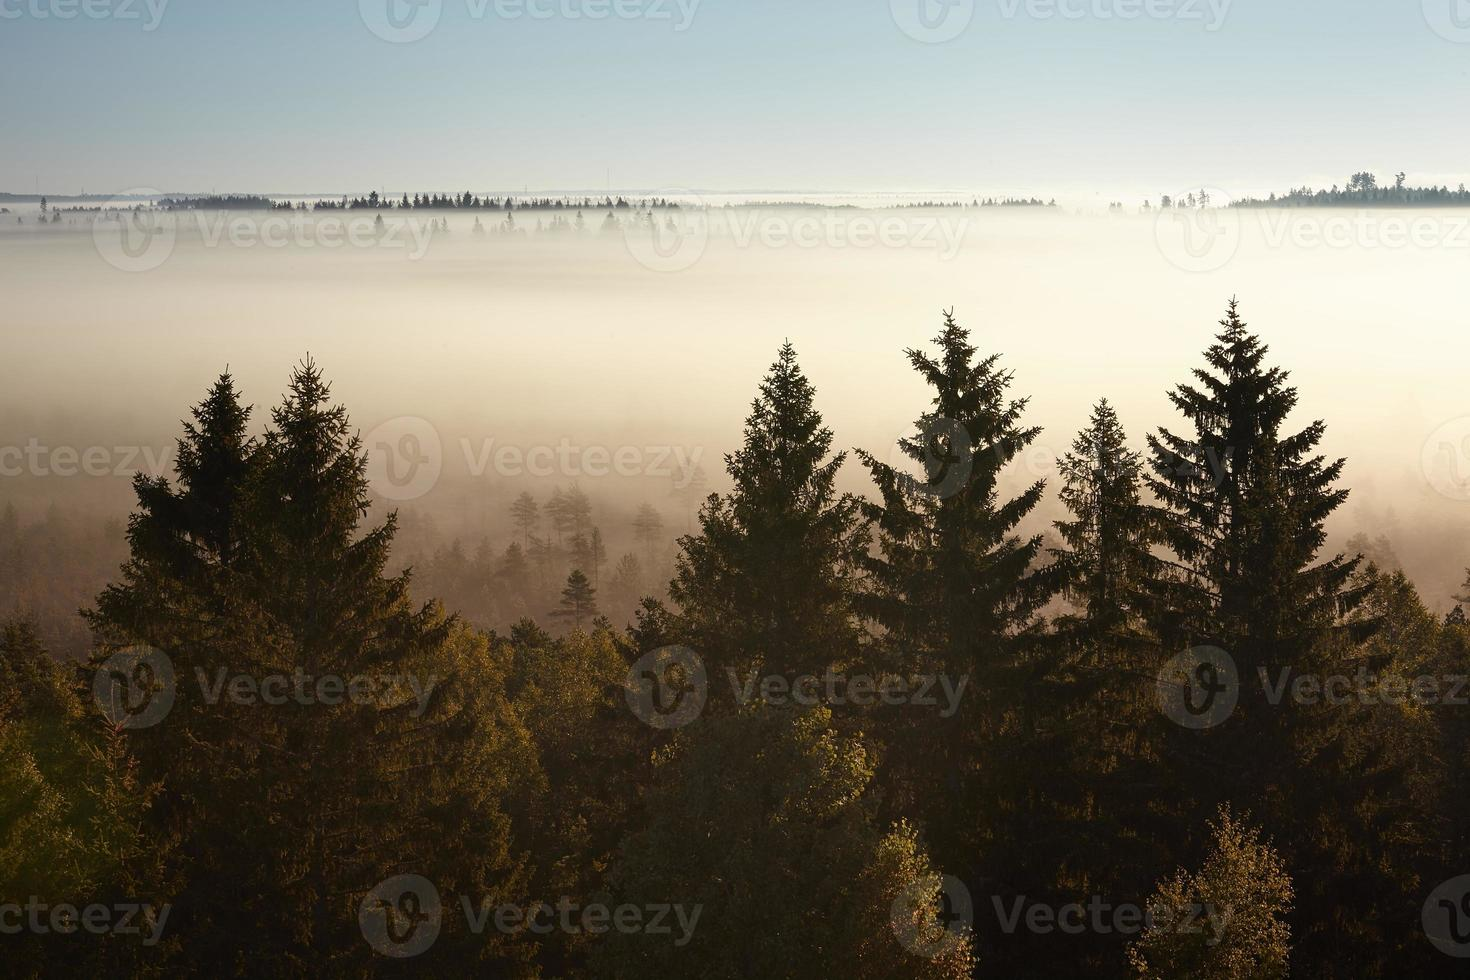 Trees on a foggy morning photo